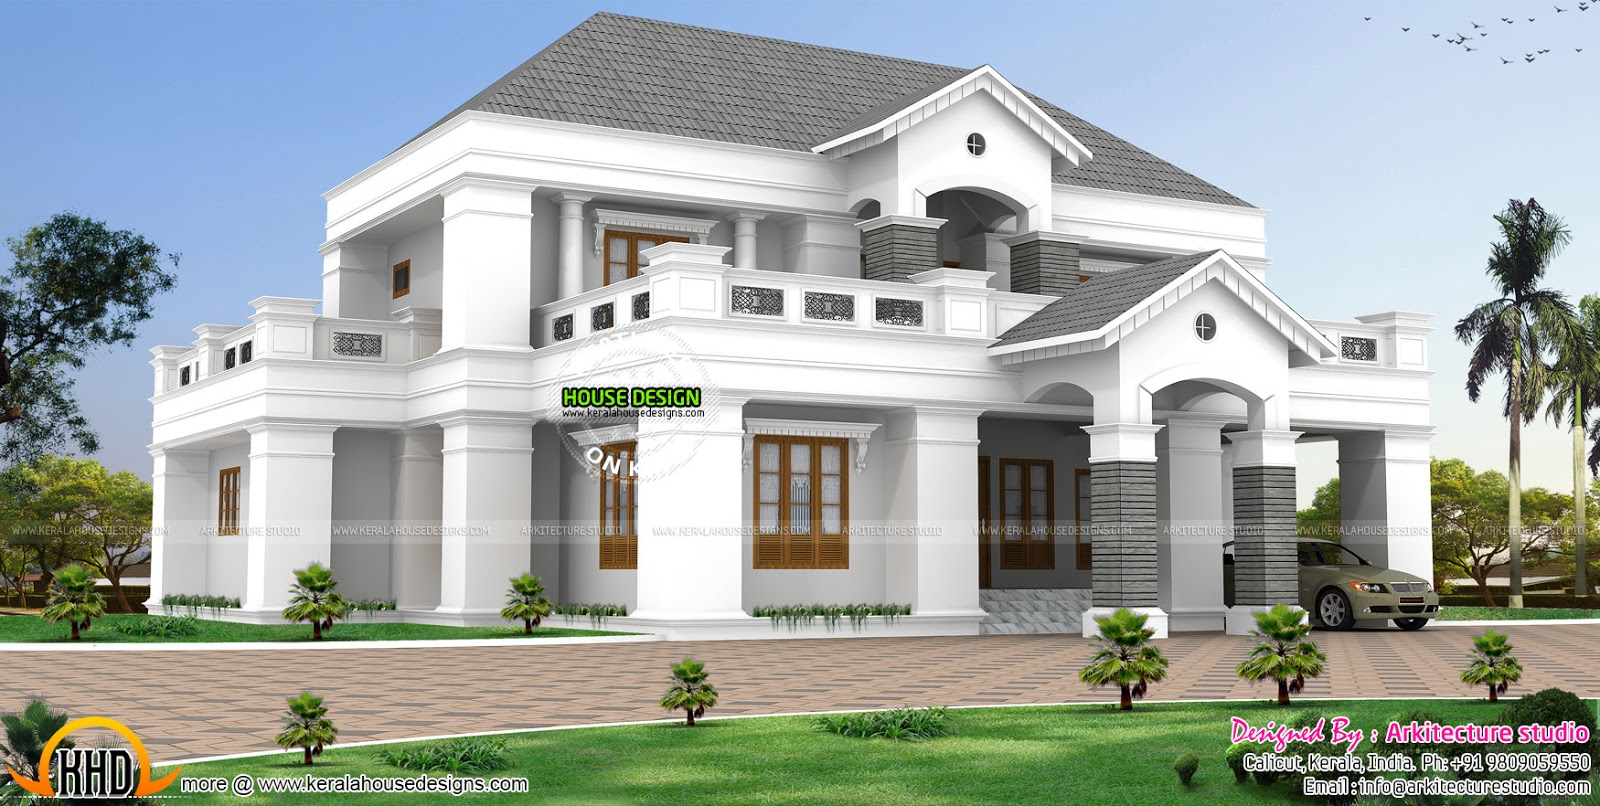 Luxurious pillar type home design kerala home design and for Home remodeling architecture